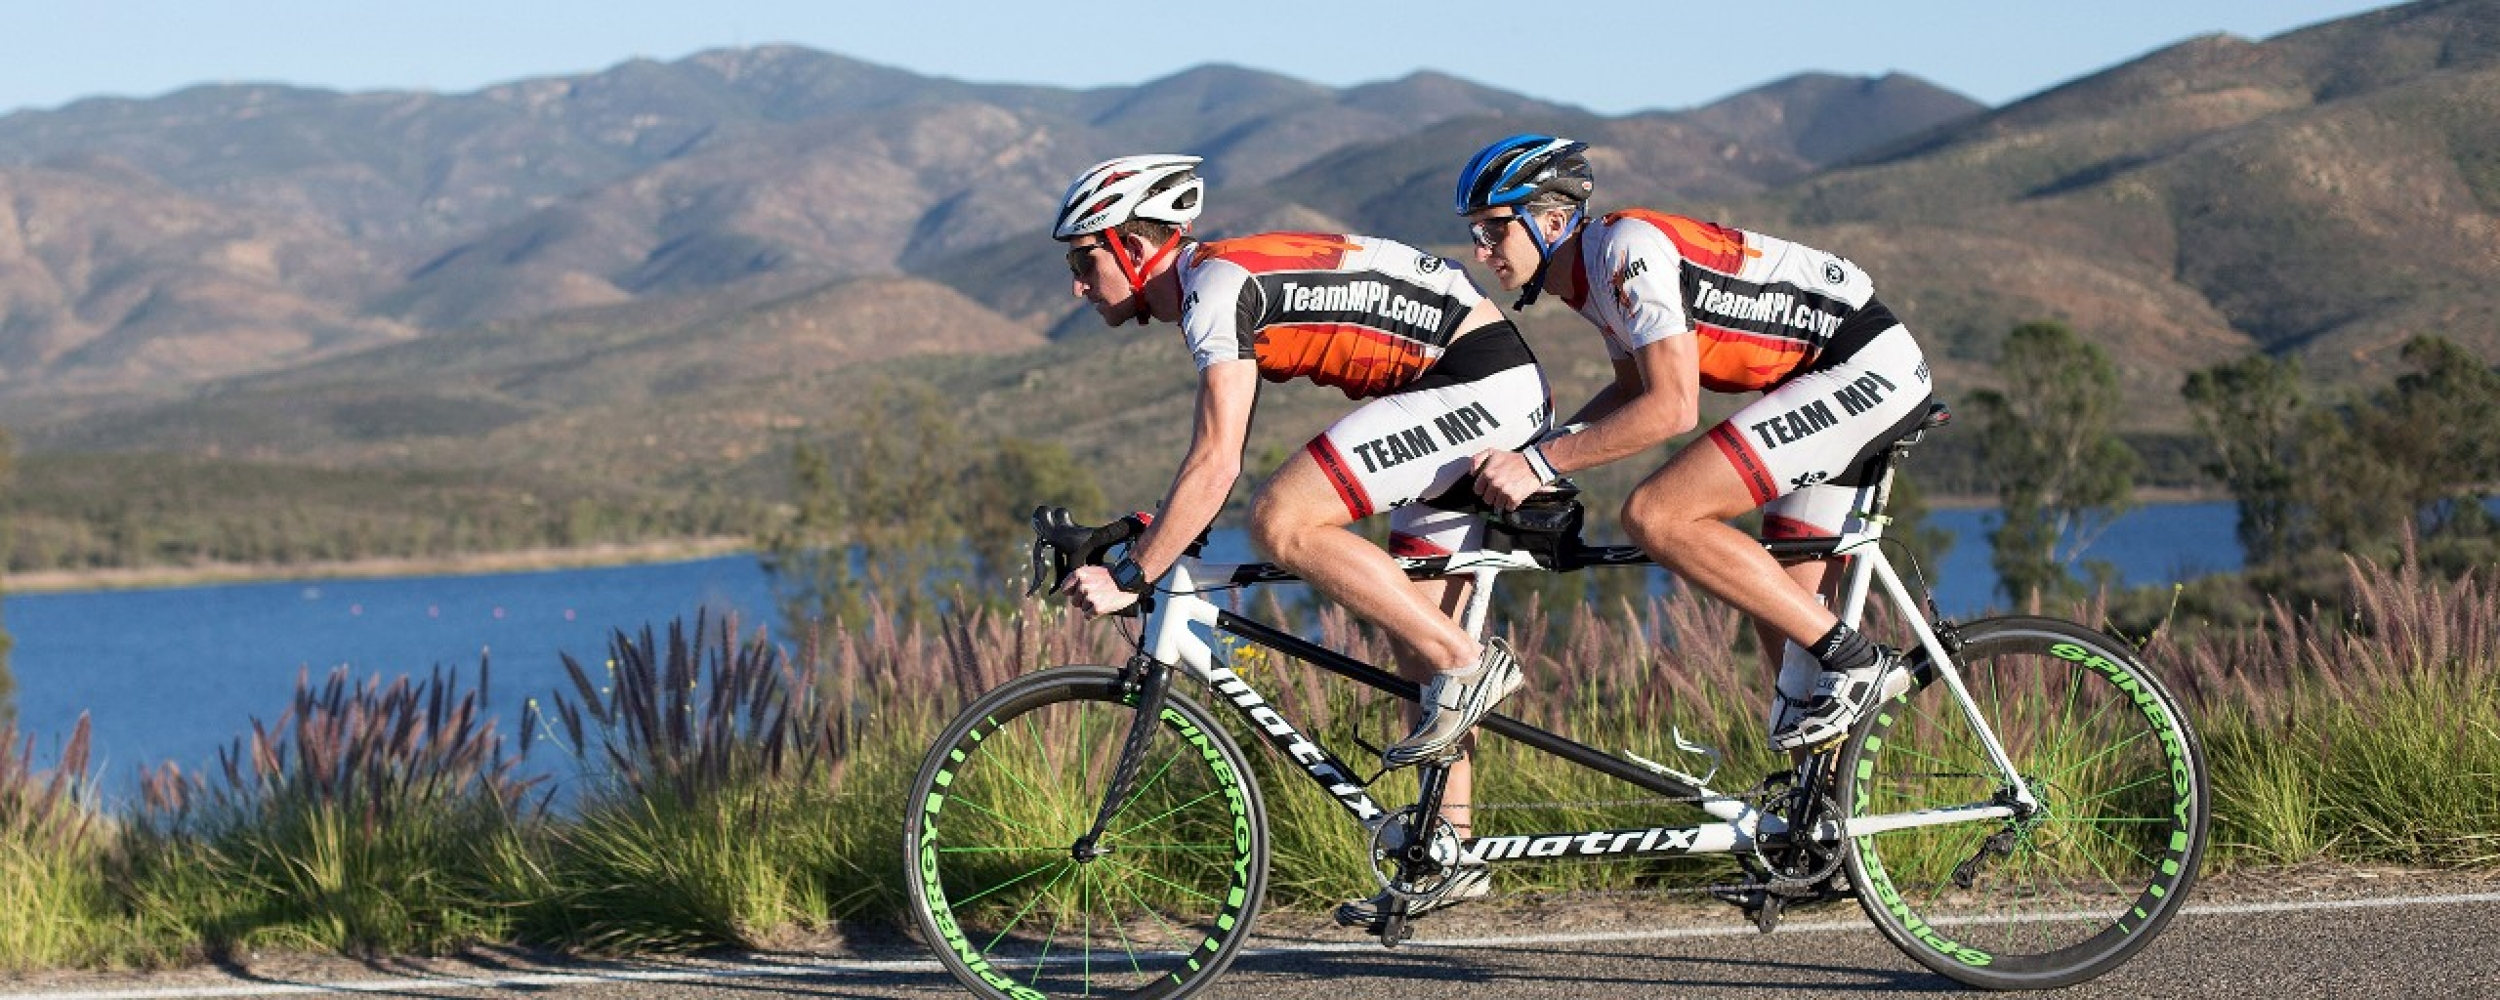 Colin Riley And Aaron Sheidies Ride A Tandem Bike Through The Mountains Of Chula Vista